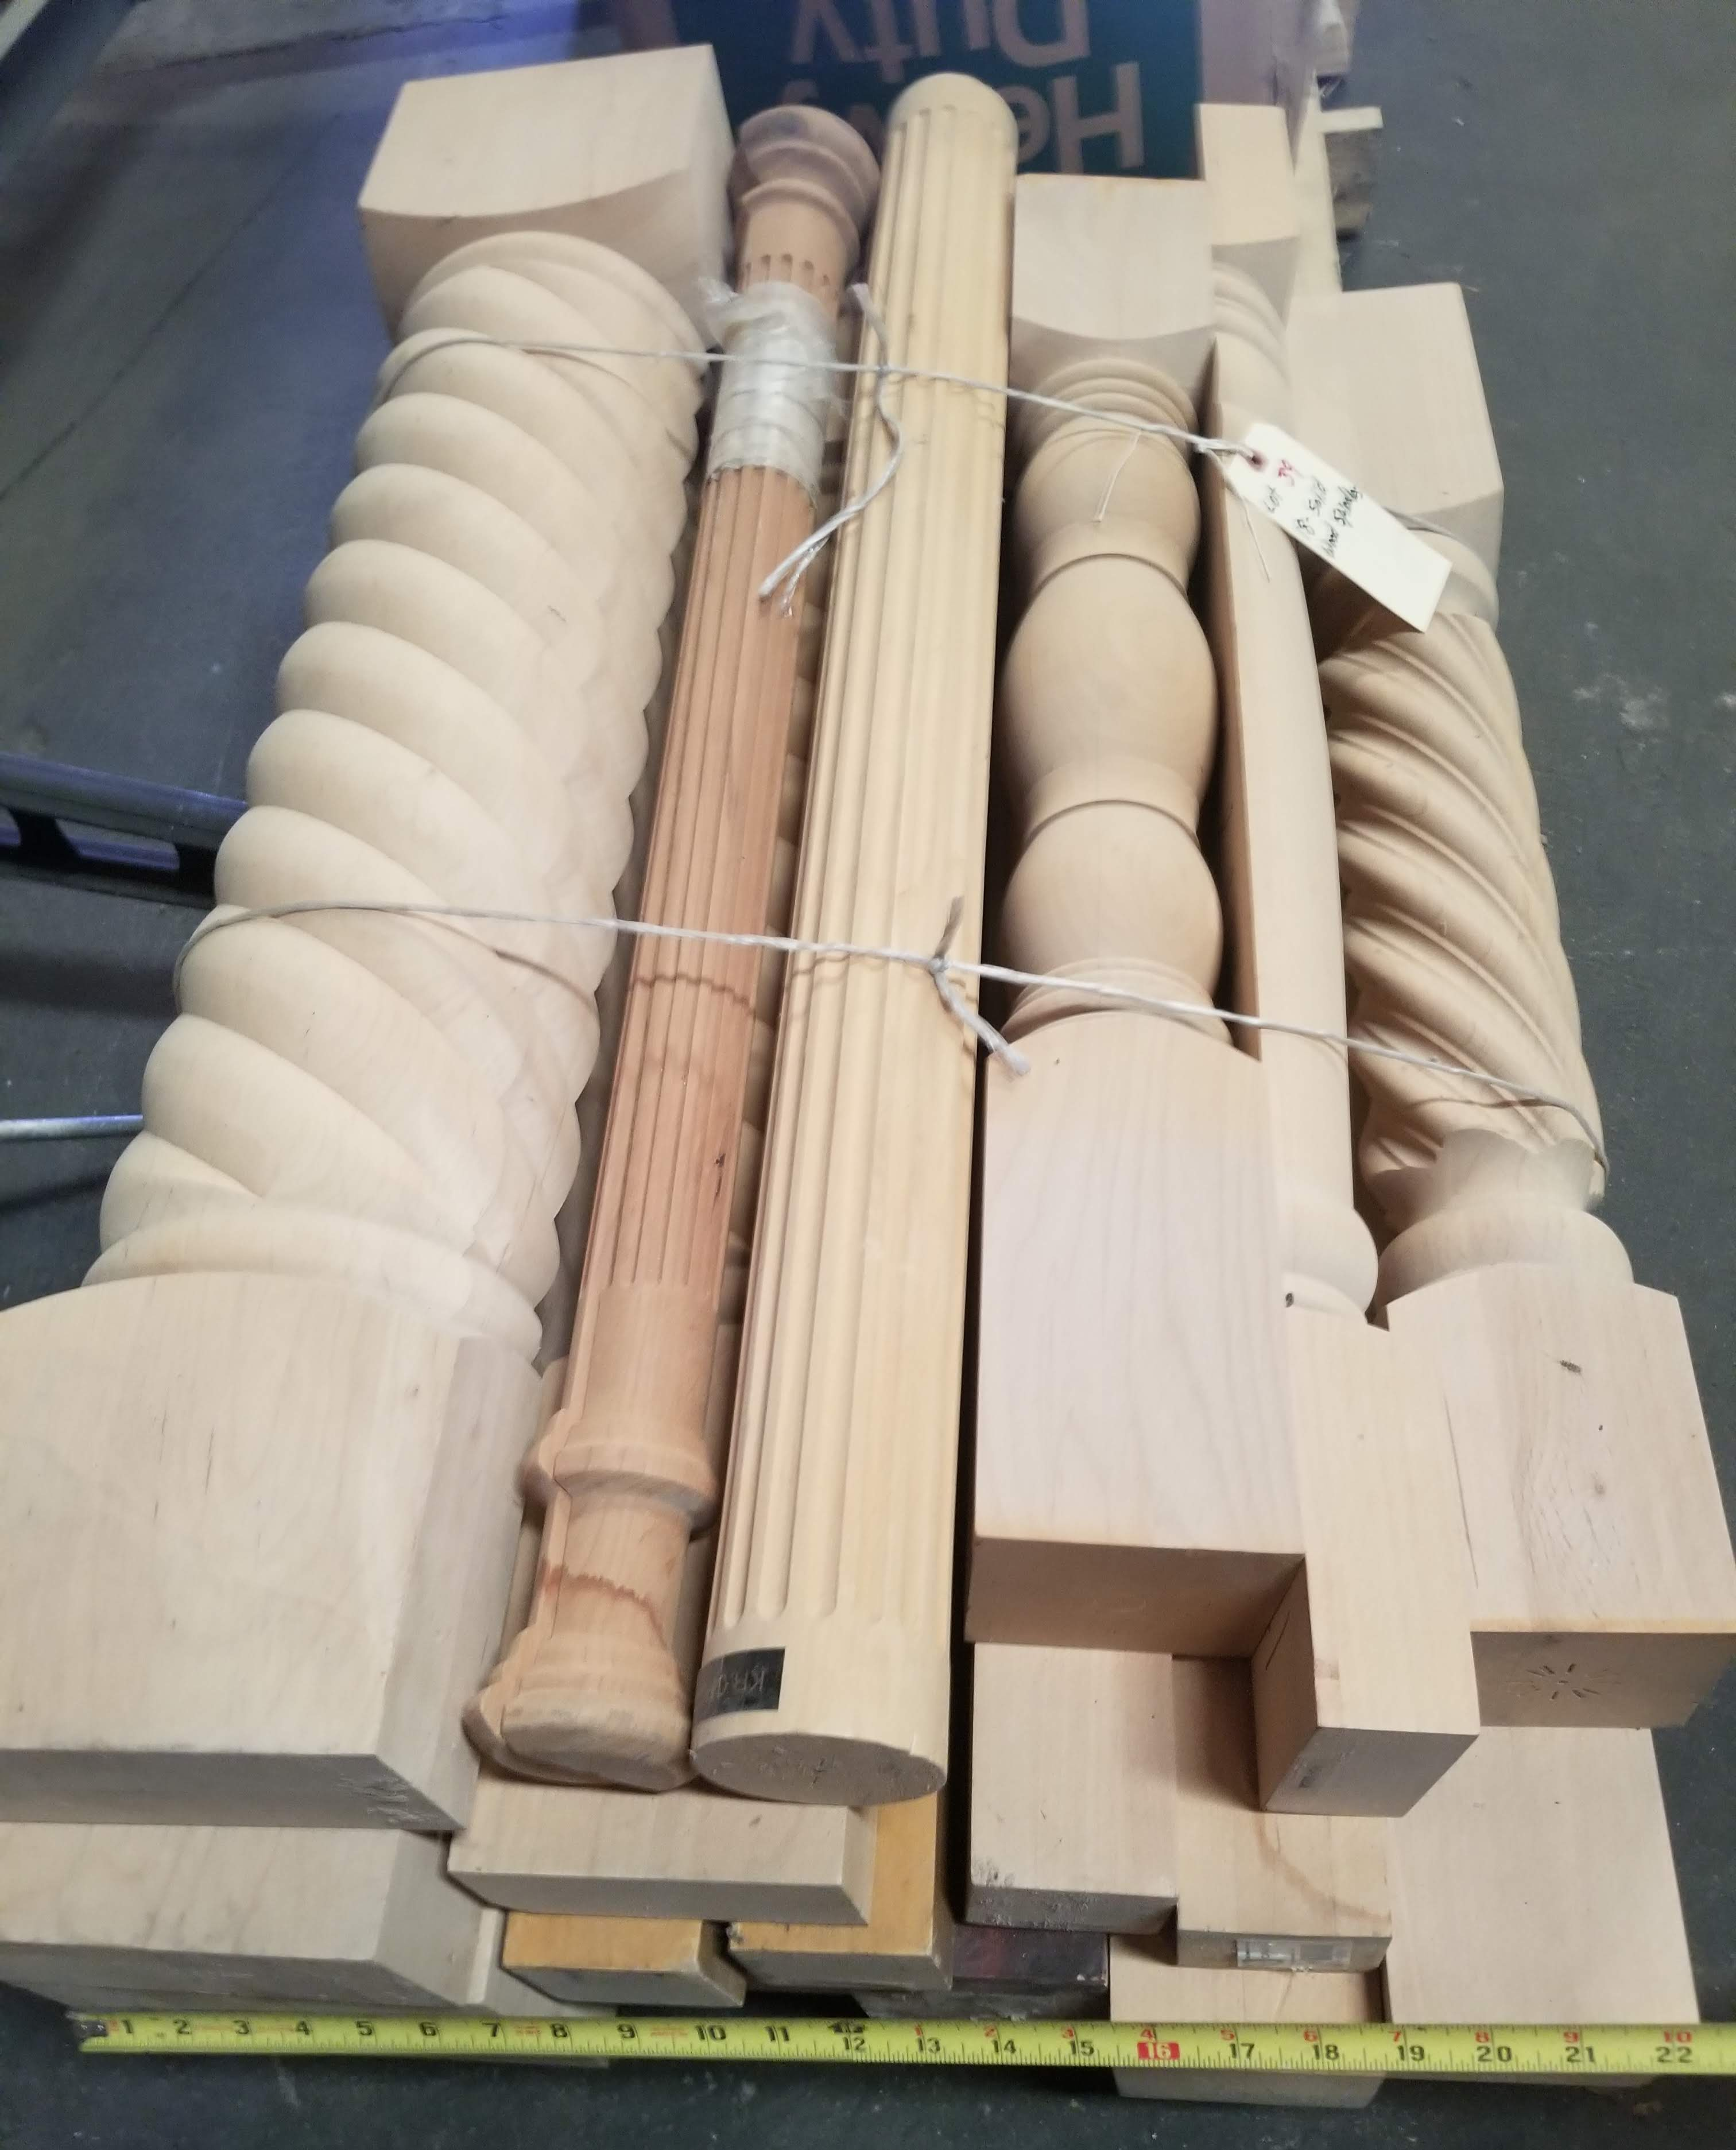 18 - Solid Fancy Hardwood Spindles - Image 5 of 6